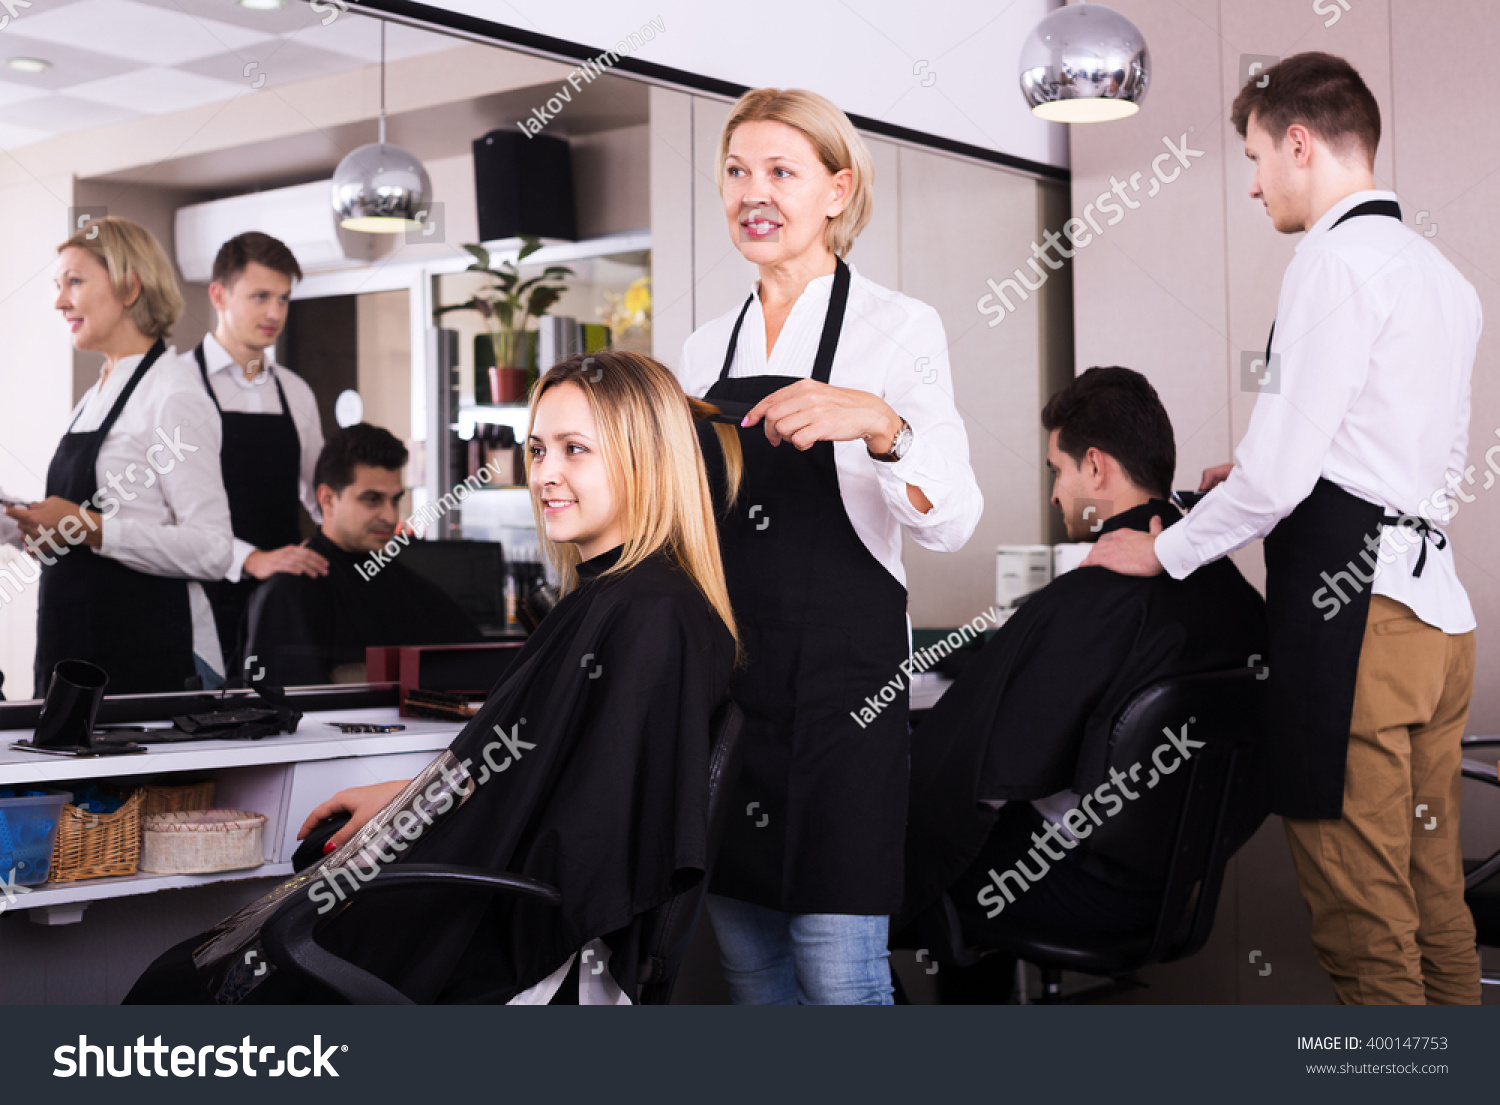 Salon Senior Senior Woman Cuts Hair Of Blonde Girl Stock Photo 400147753